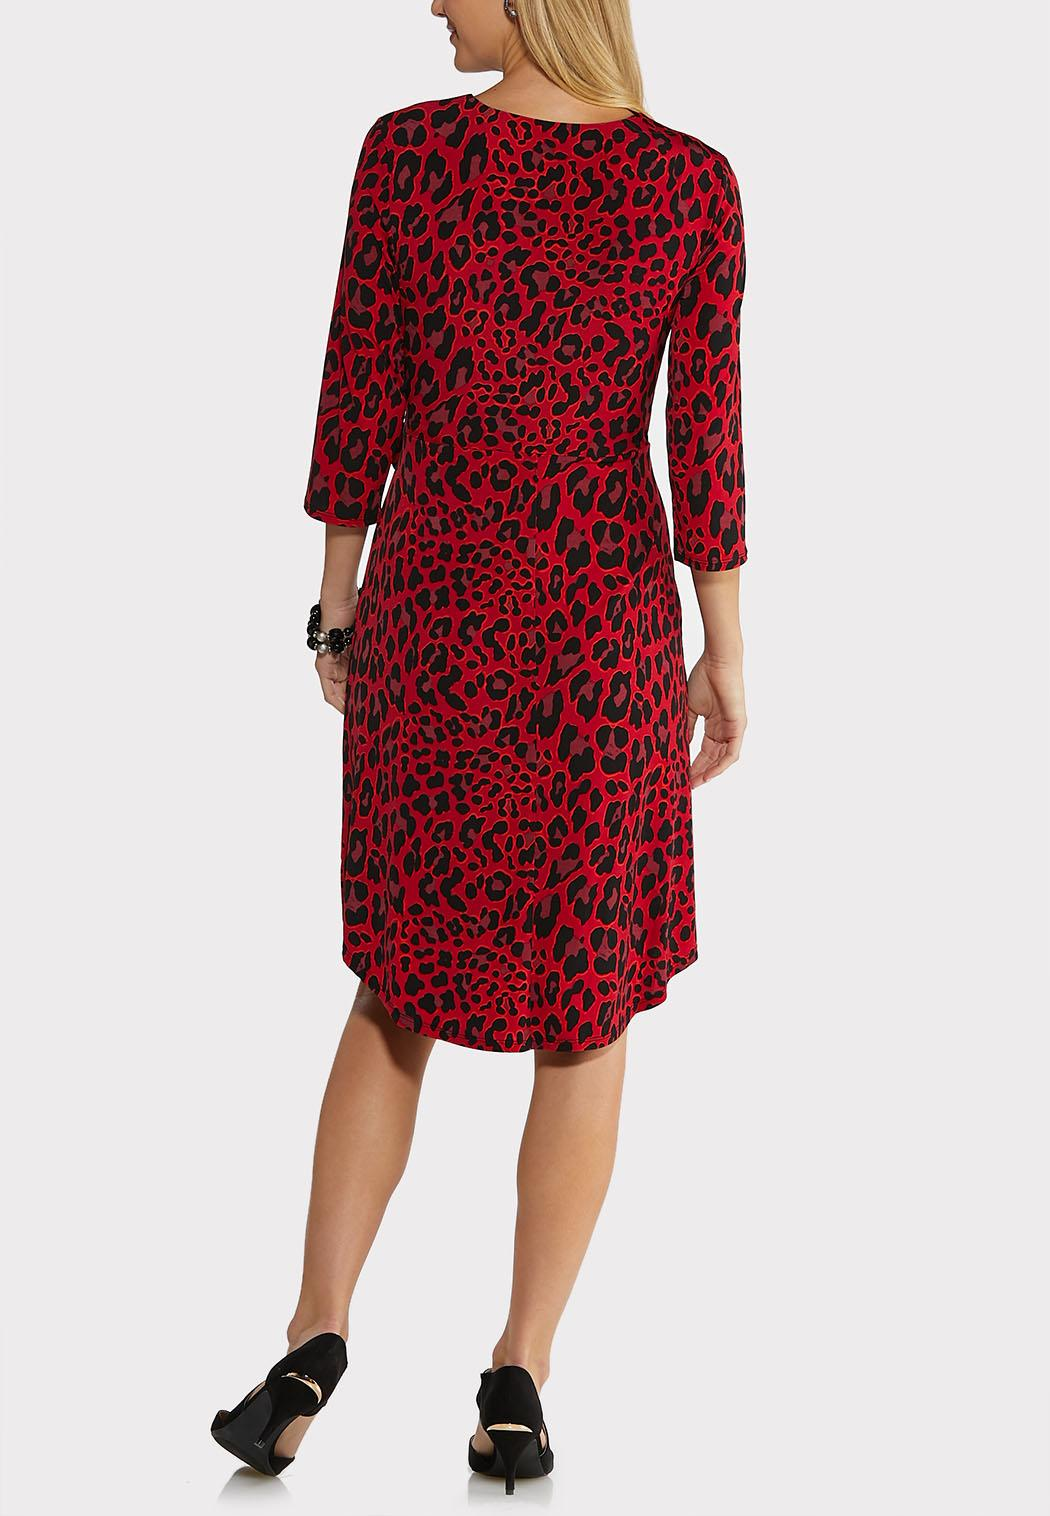 Plus Size Red Leopard Dress (Item #44017355)